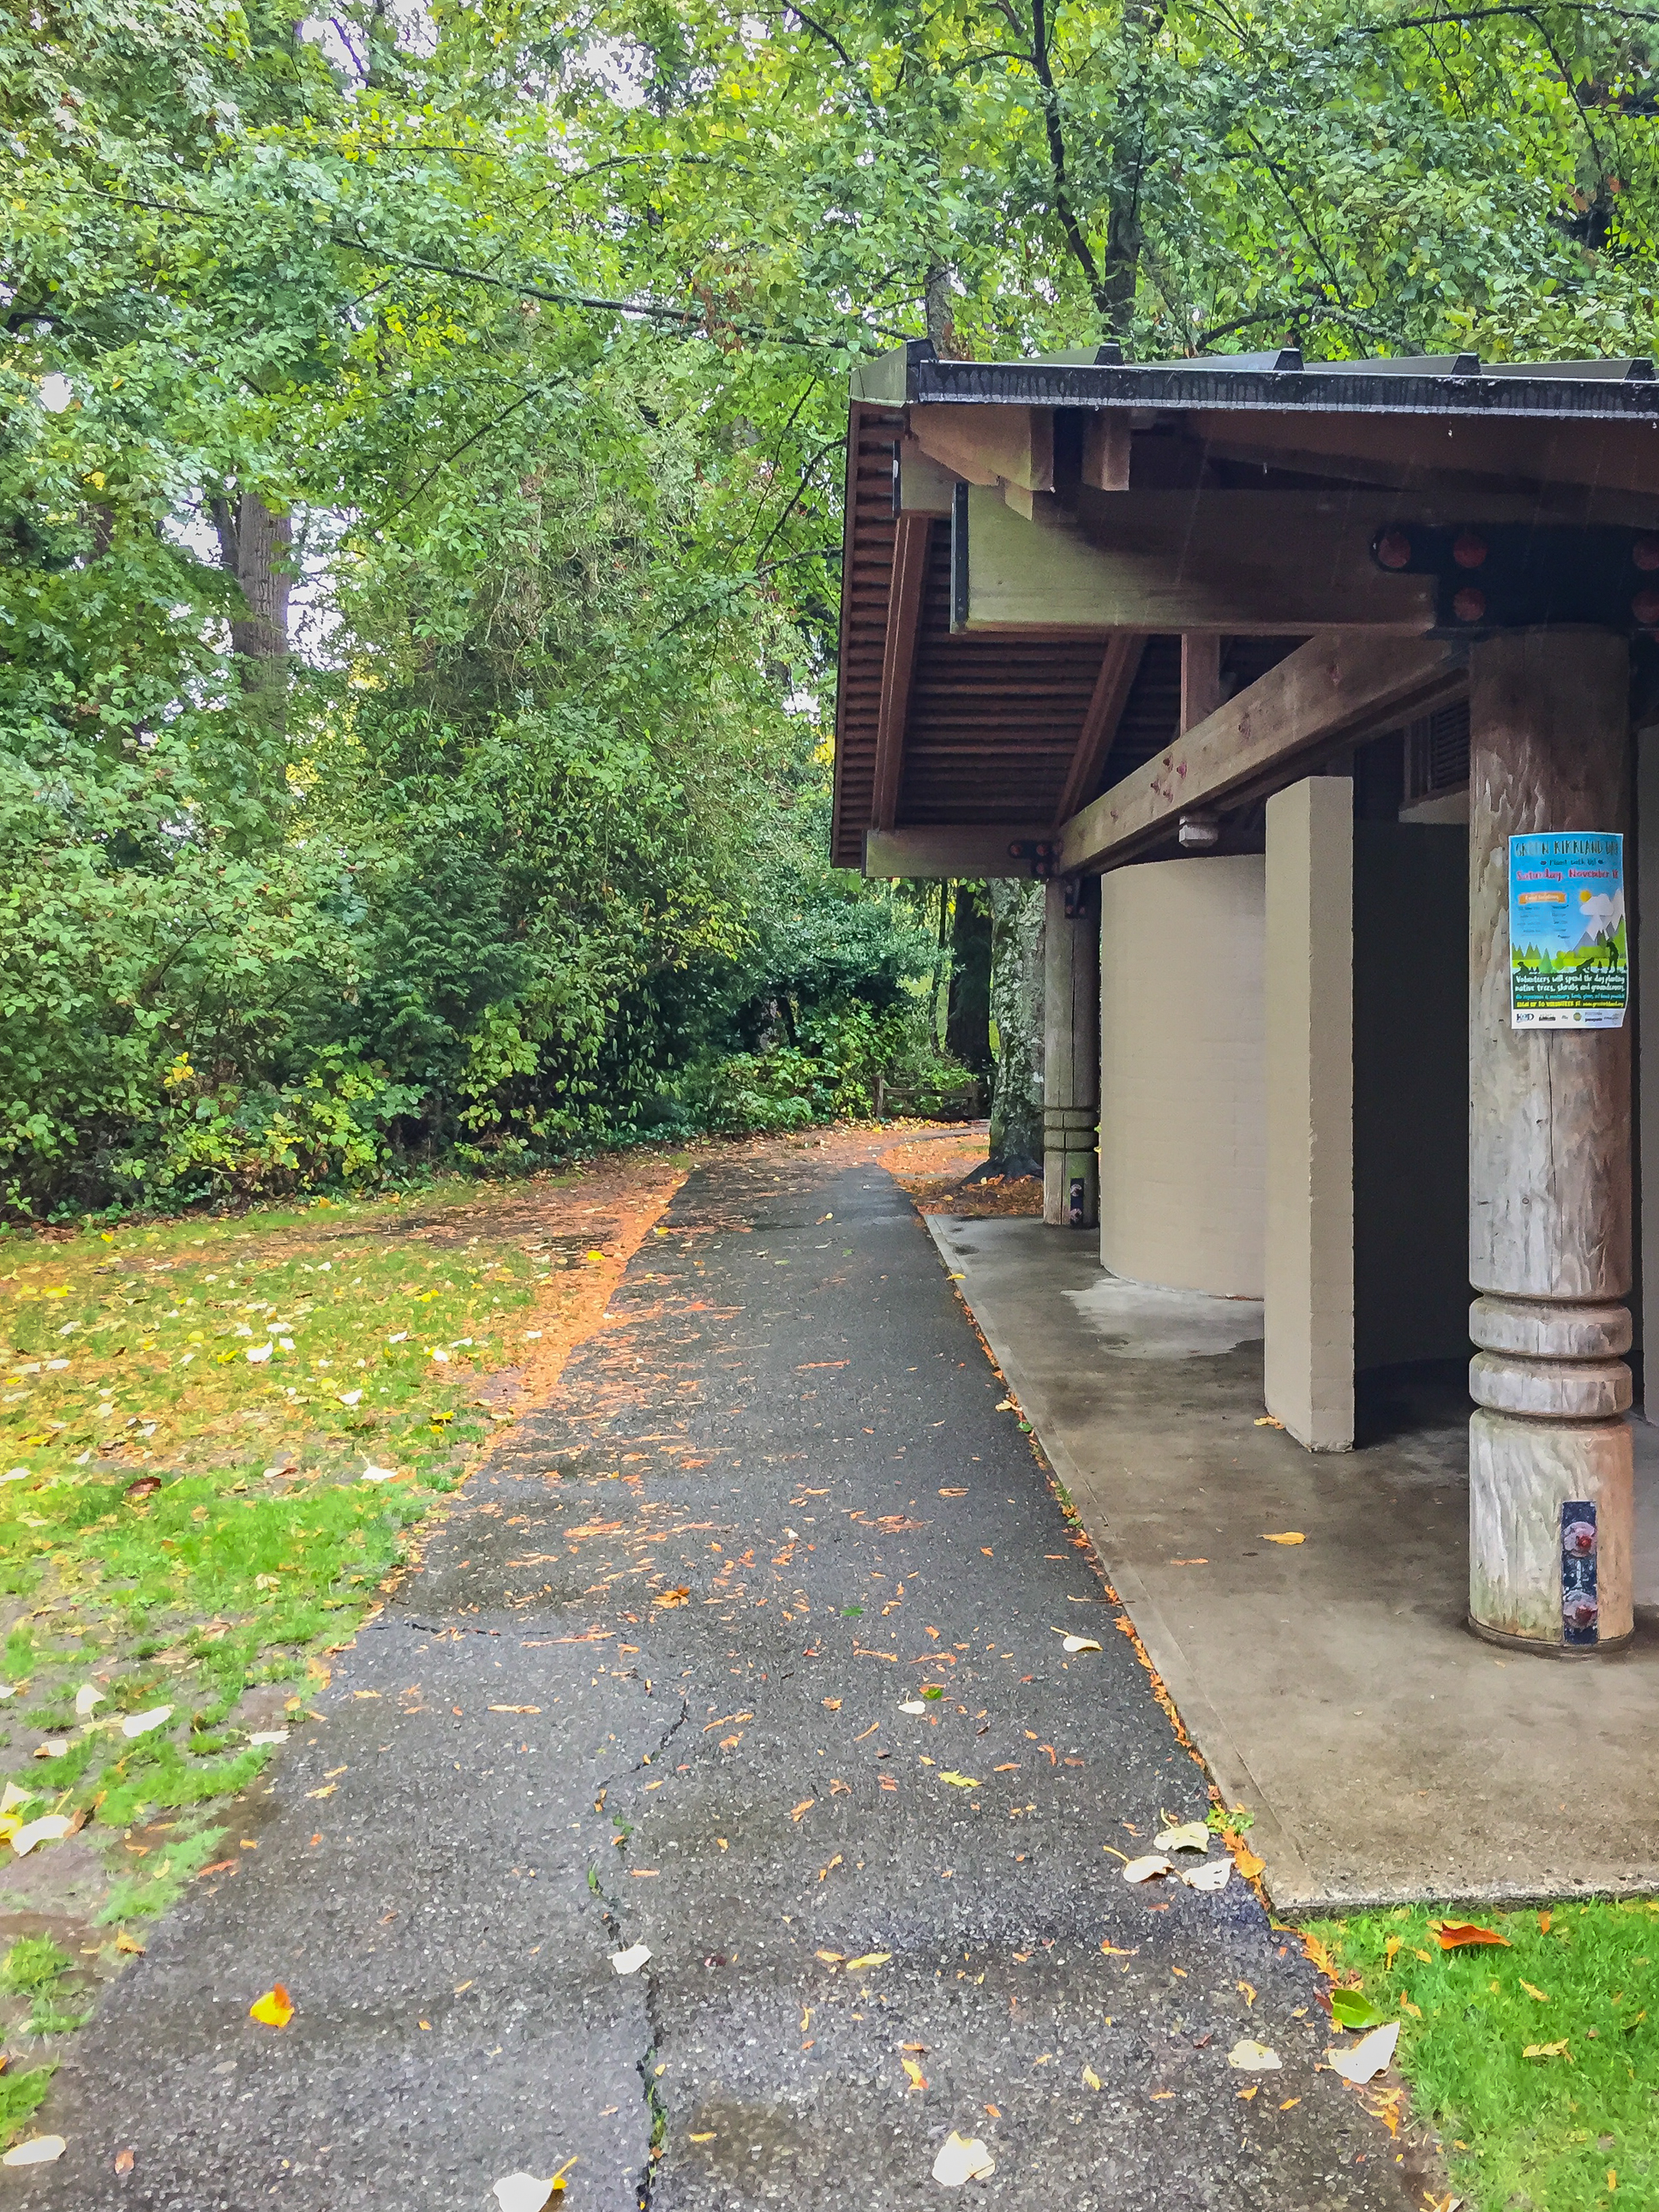 The start of the Beach Trail next to the restrooms